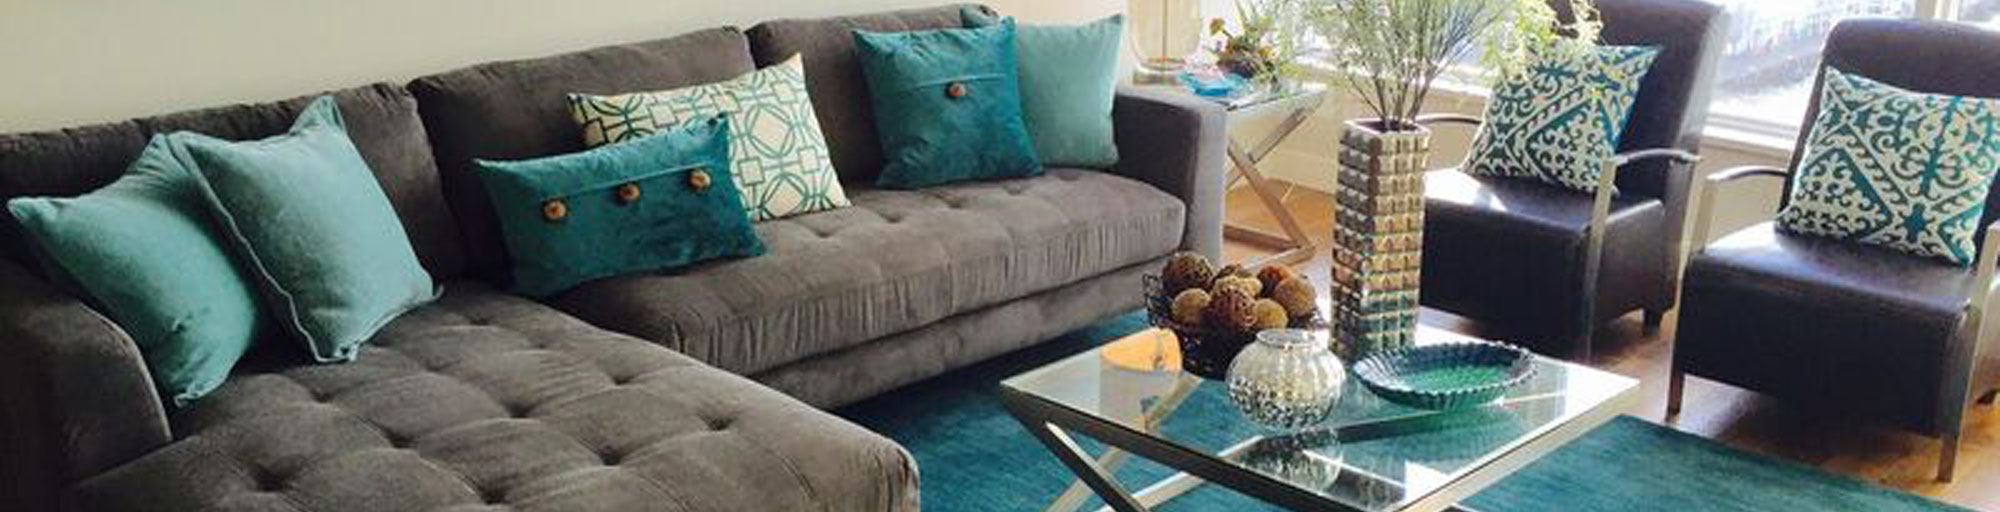 Grey and turquoise living room set